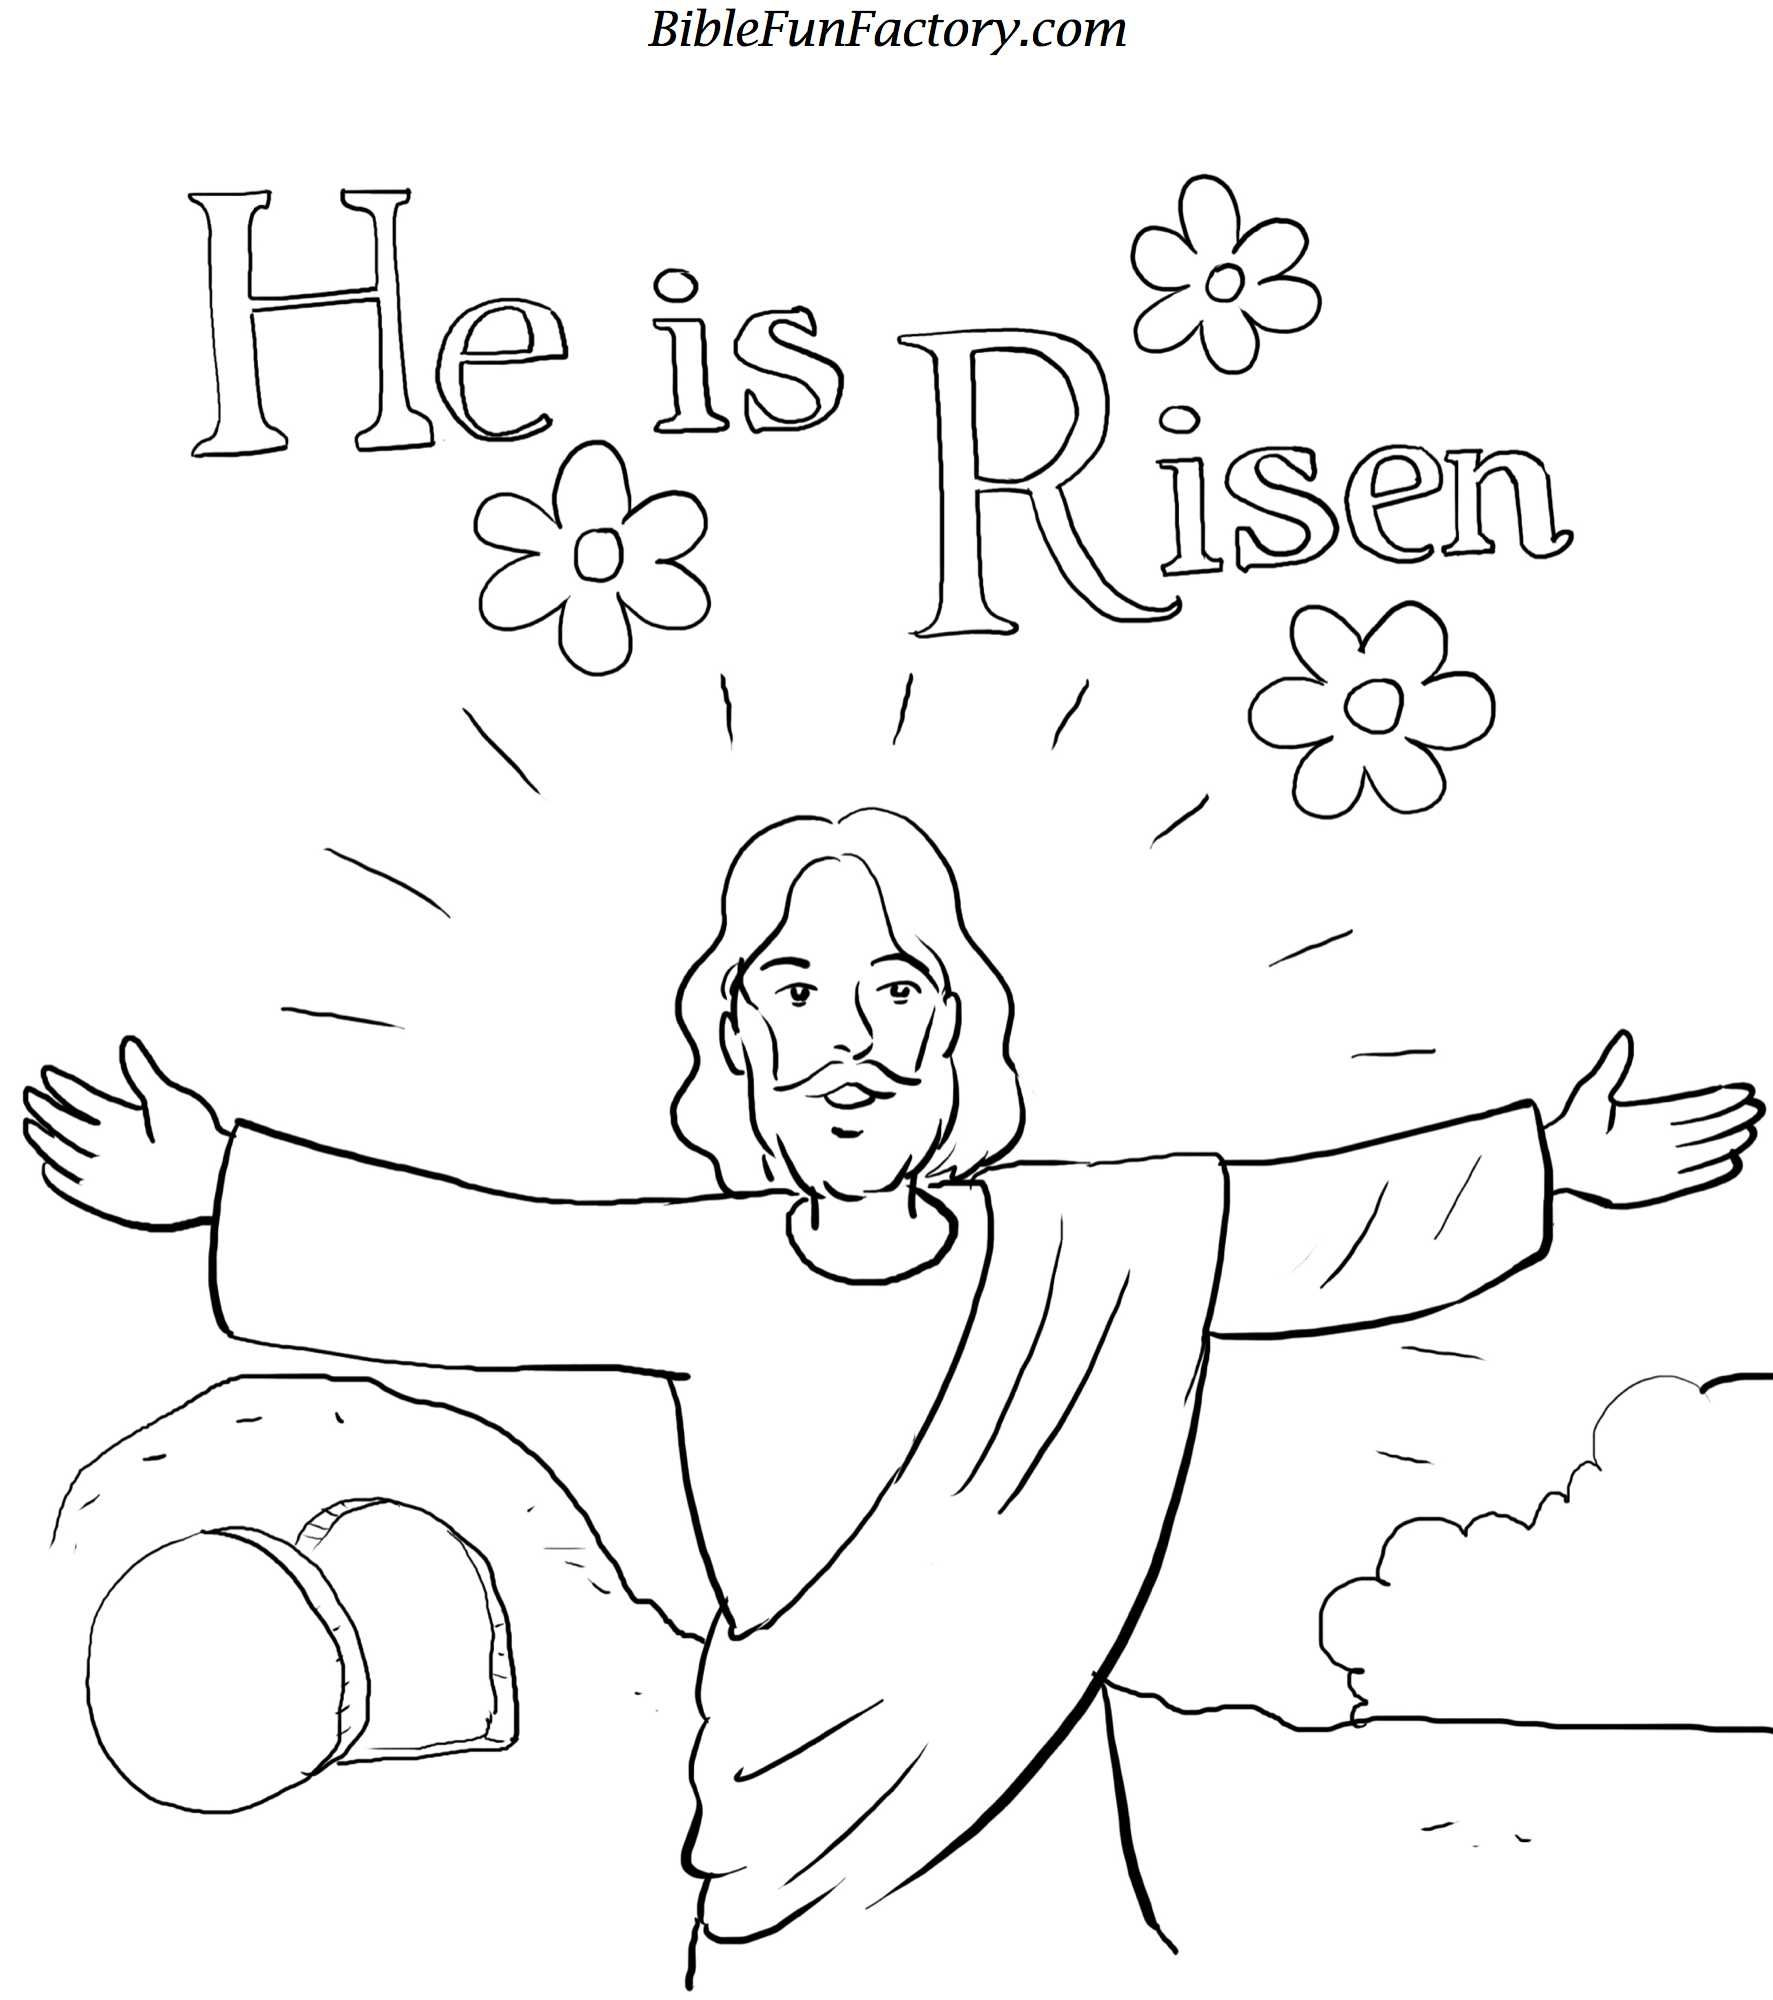 Resurrection Coloring Pages Free | Easter Coloring Sheet | Easter - Free Printable Easter Colouring Sheets